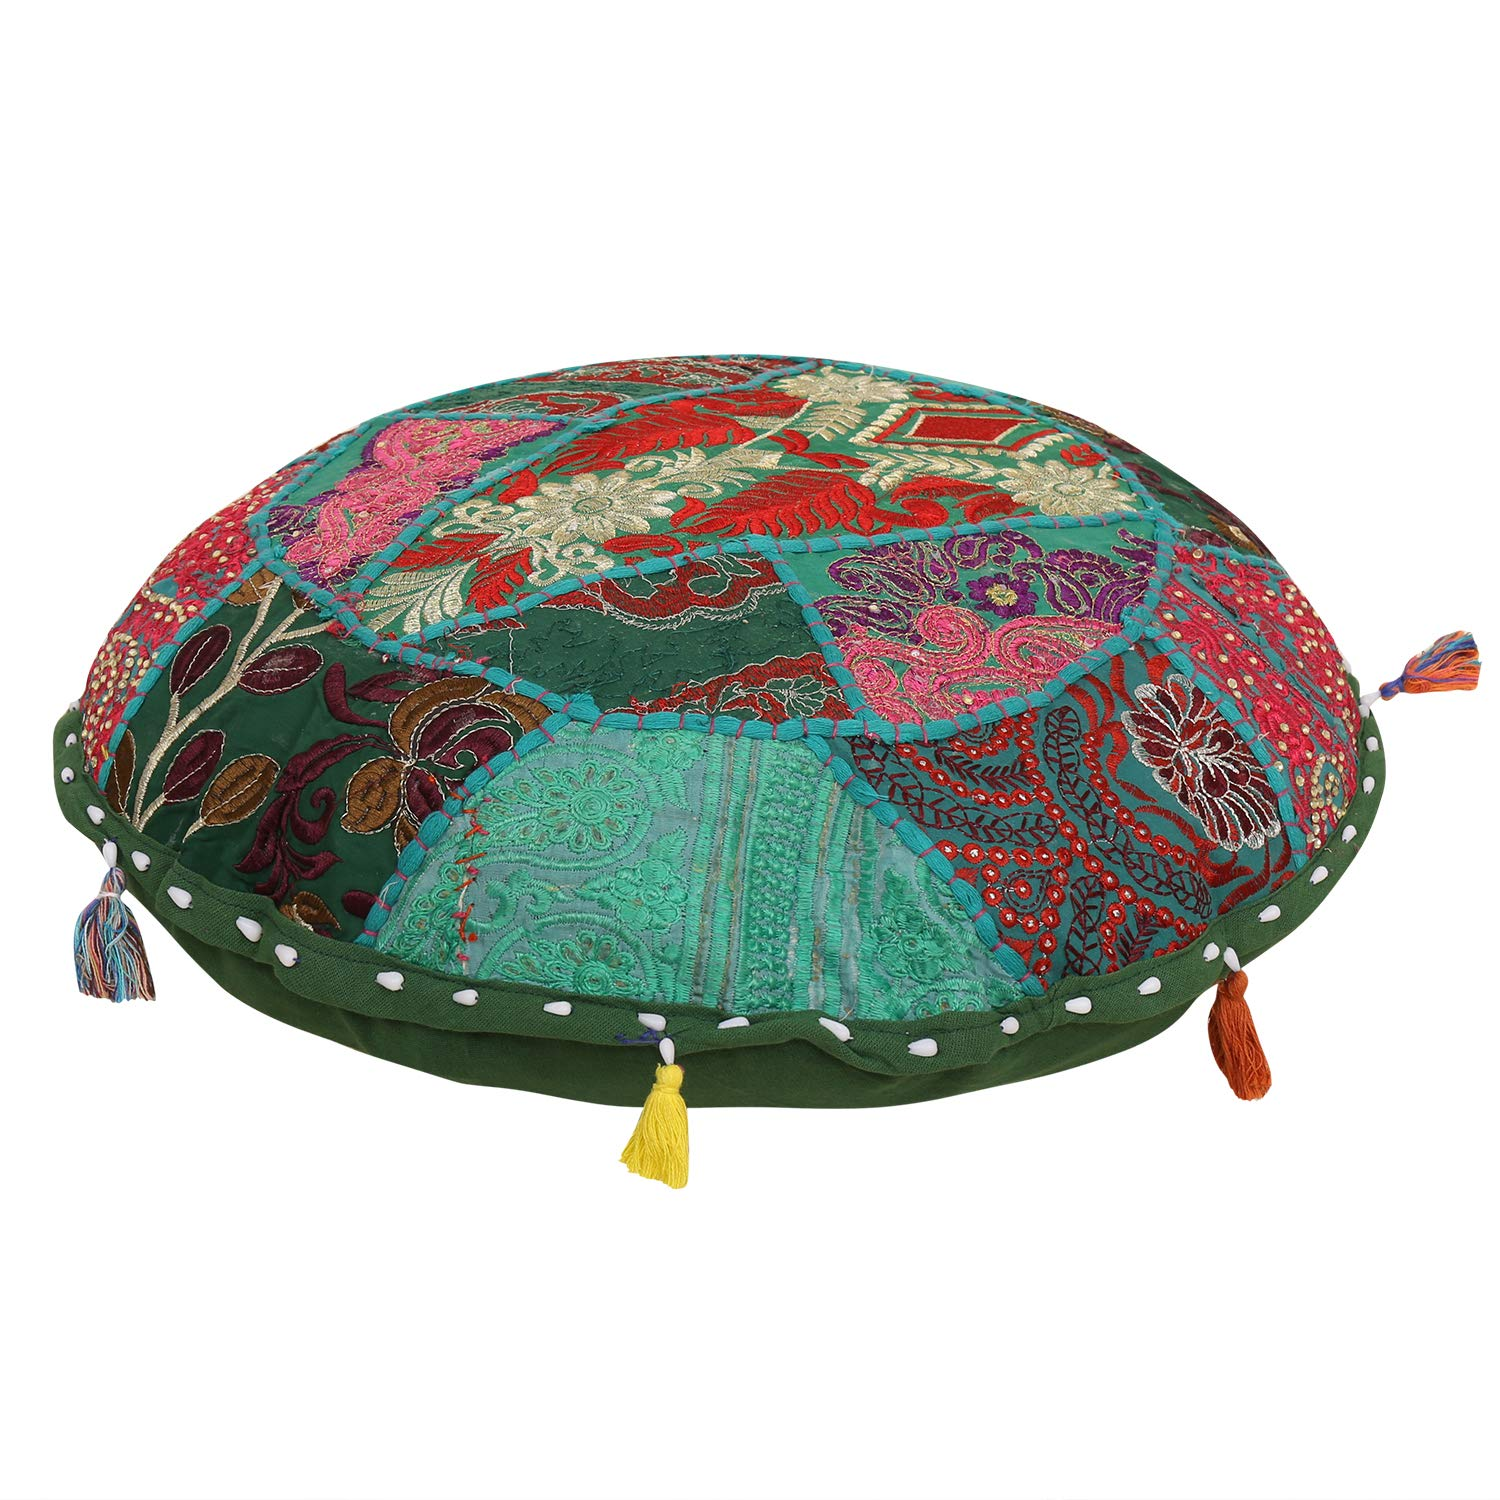 Home Decorative Handmade Cotton Ottoman favorite Foot Stool- Patchwork Online limited product Fl